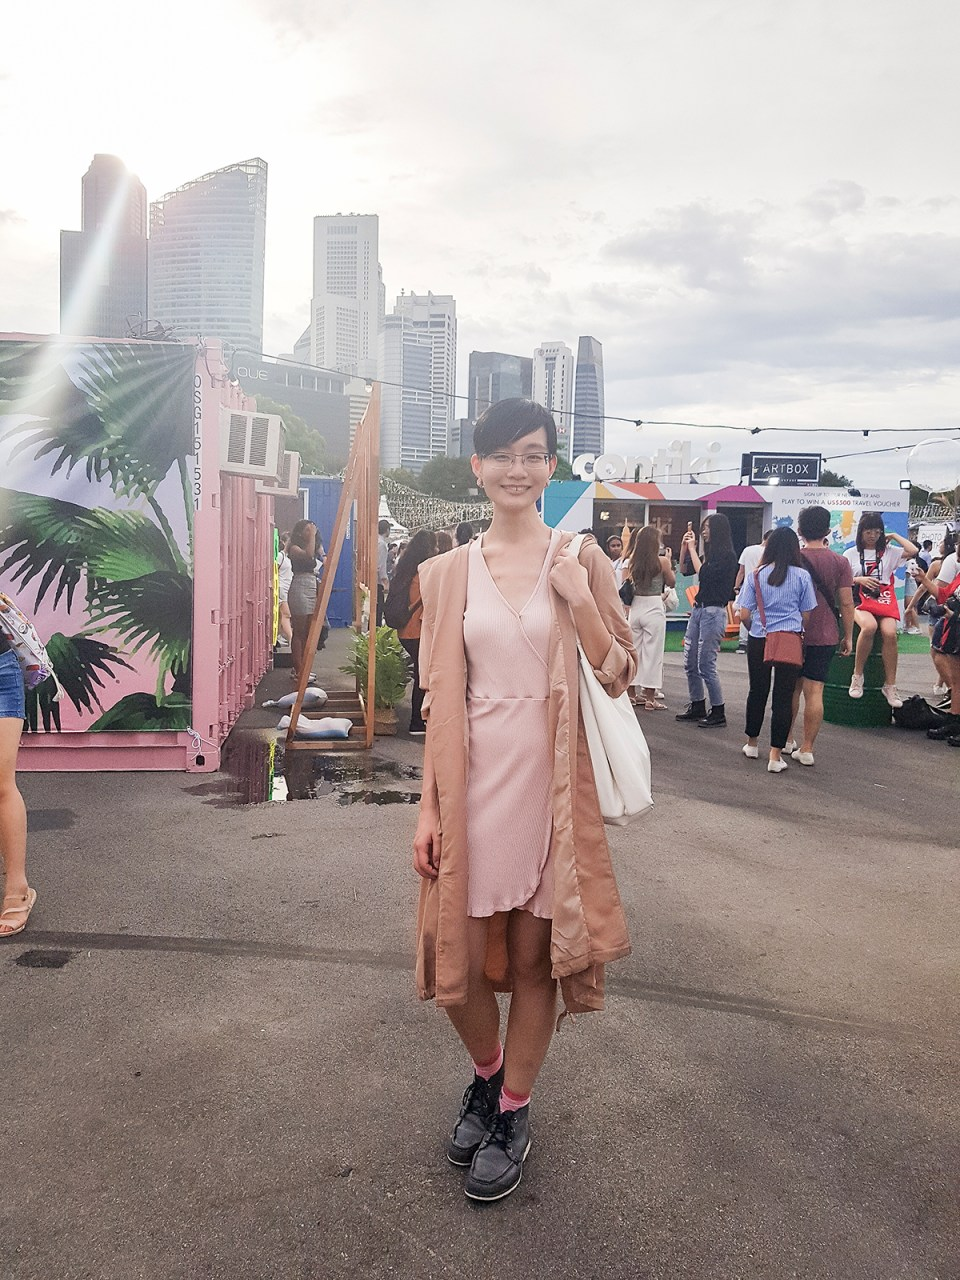 Outfit at Wefie with Kooling at Artbox Singapore 2018.